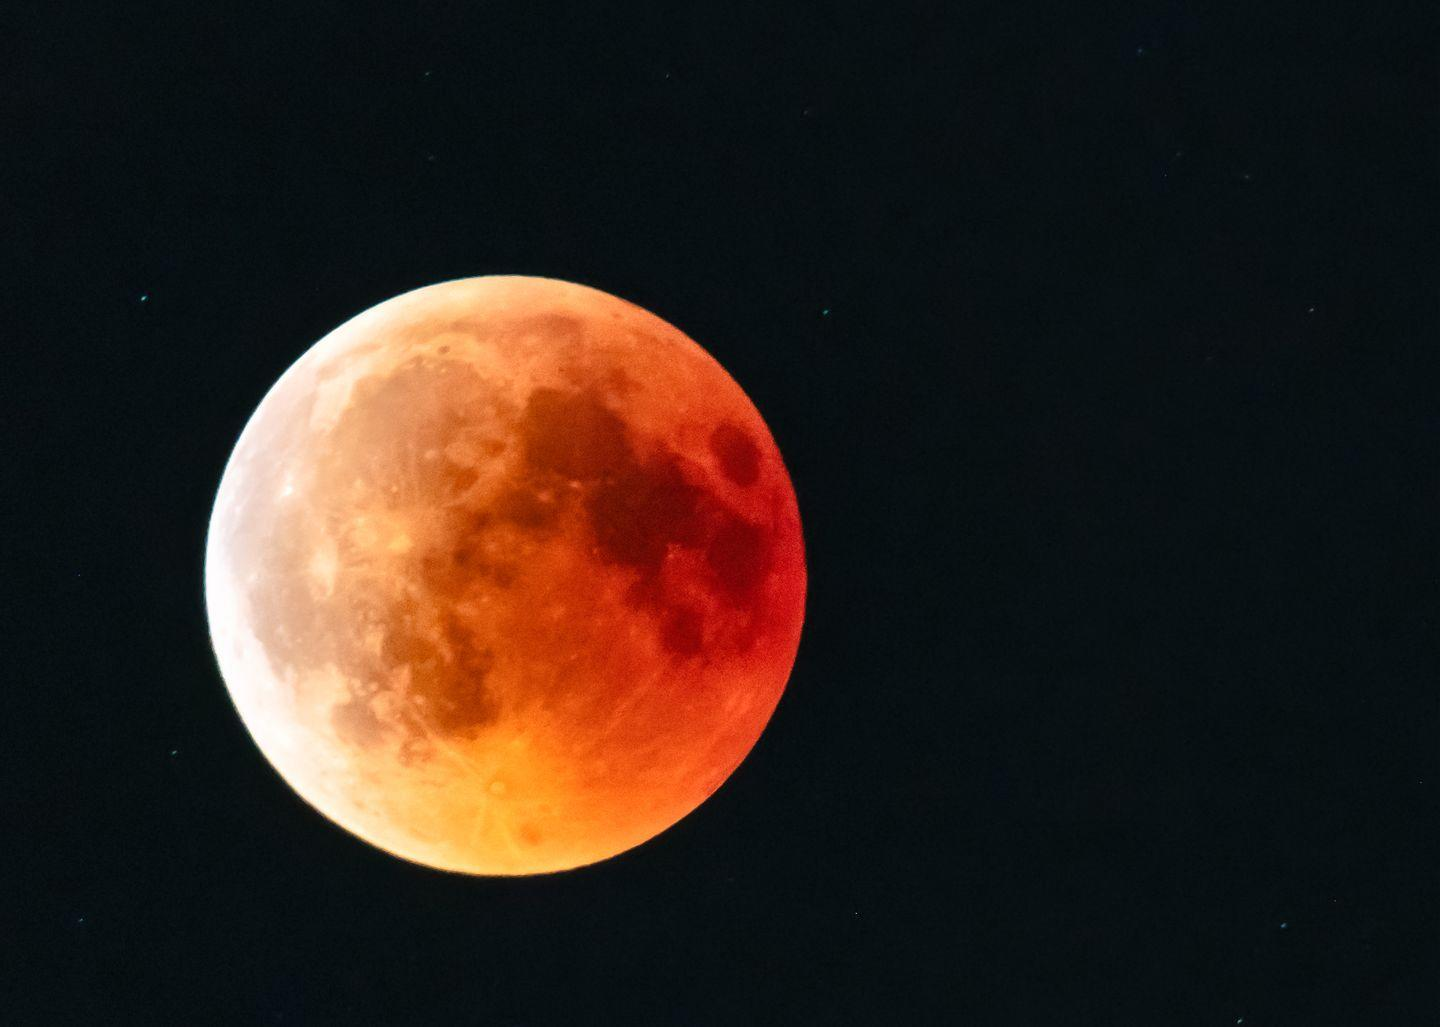 <p>A blood moon occurs when the moon dips low in the sky, through Earth's shadow, which casts a reddish glow across the satellite.</p>